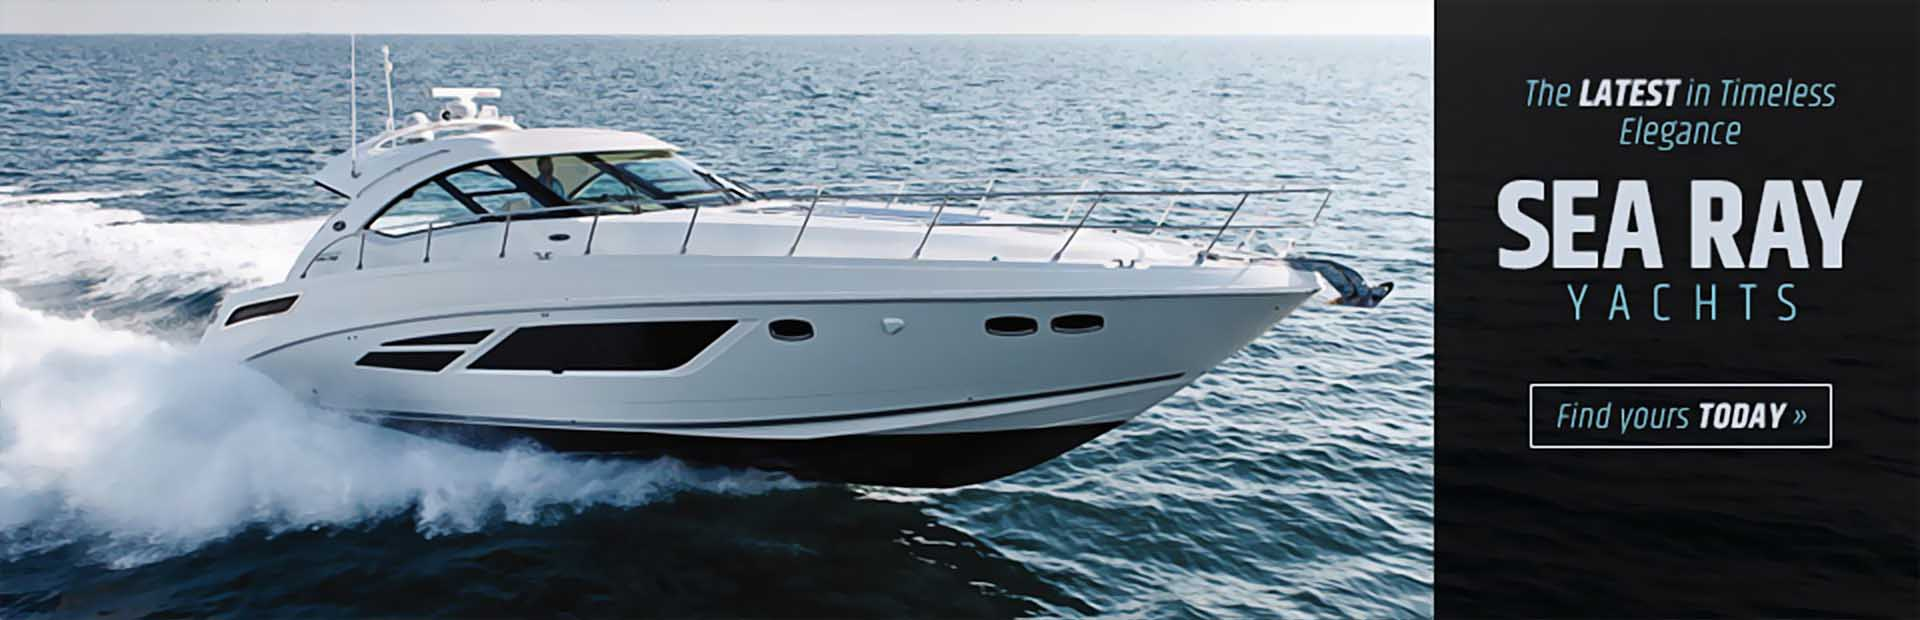 Sea Ray Yachts: Click here to view the models.